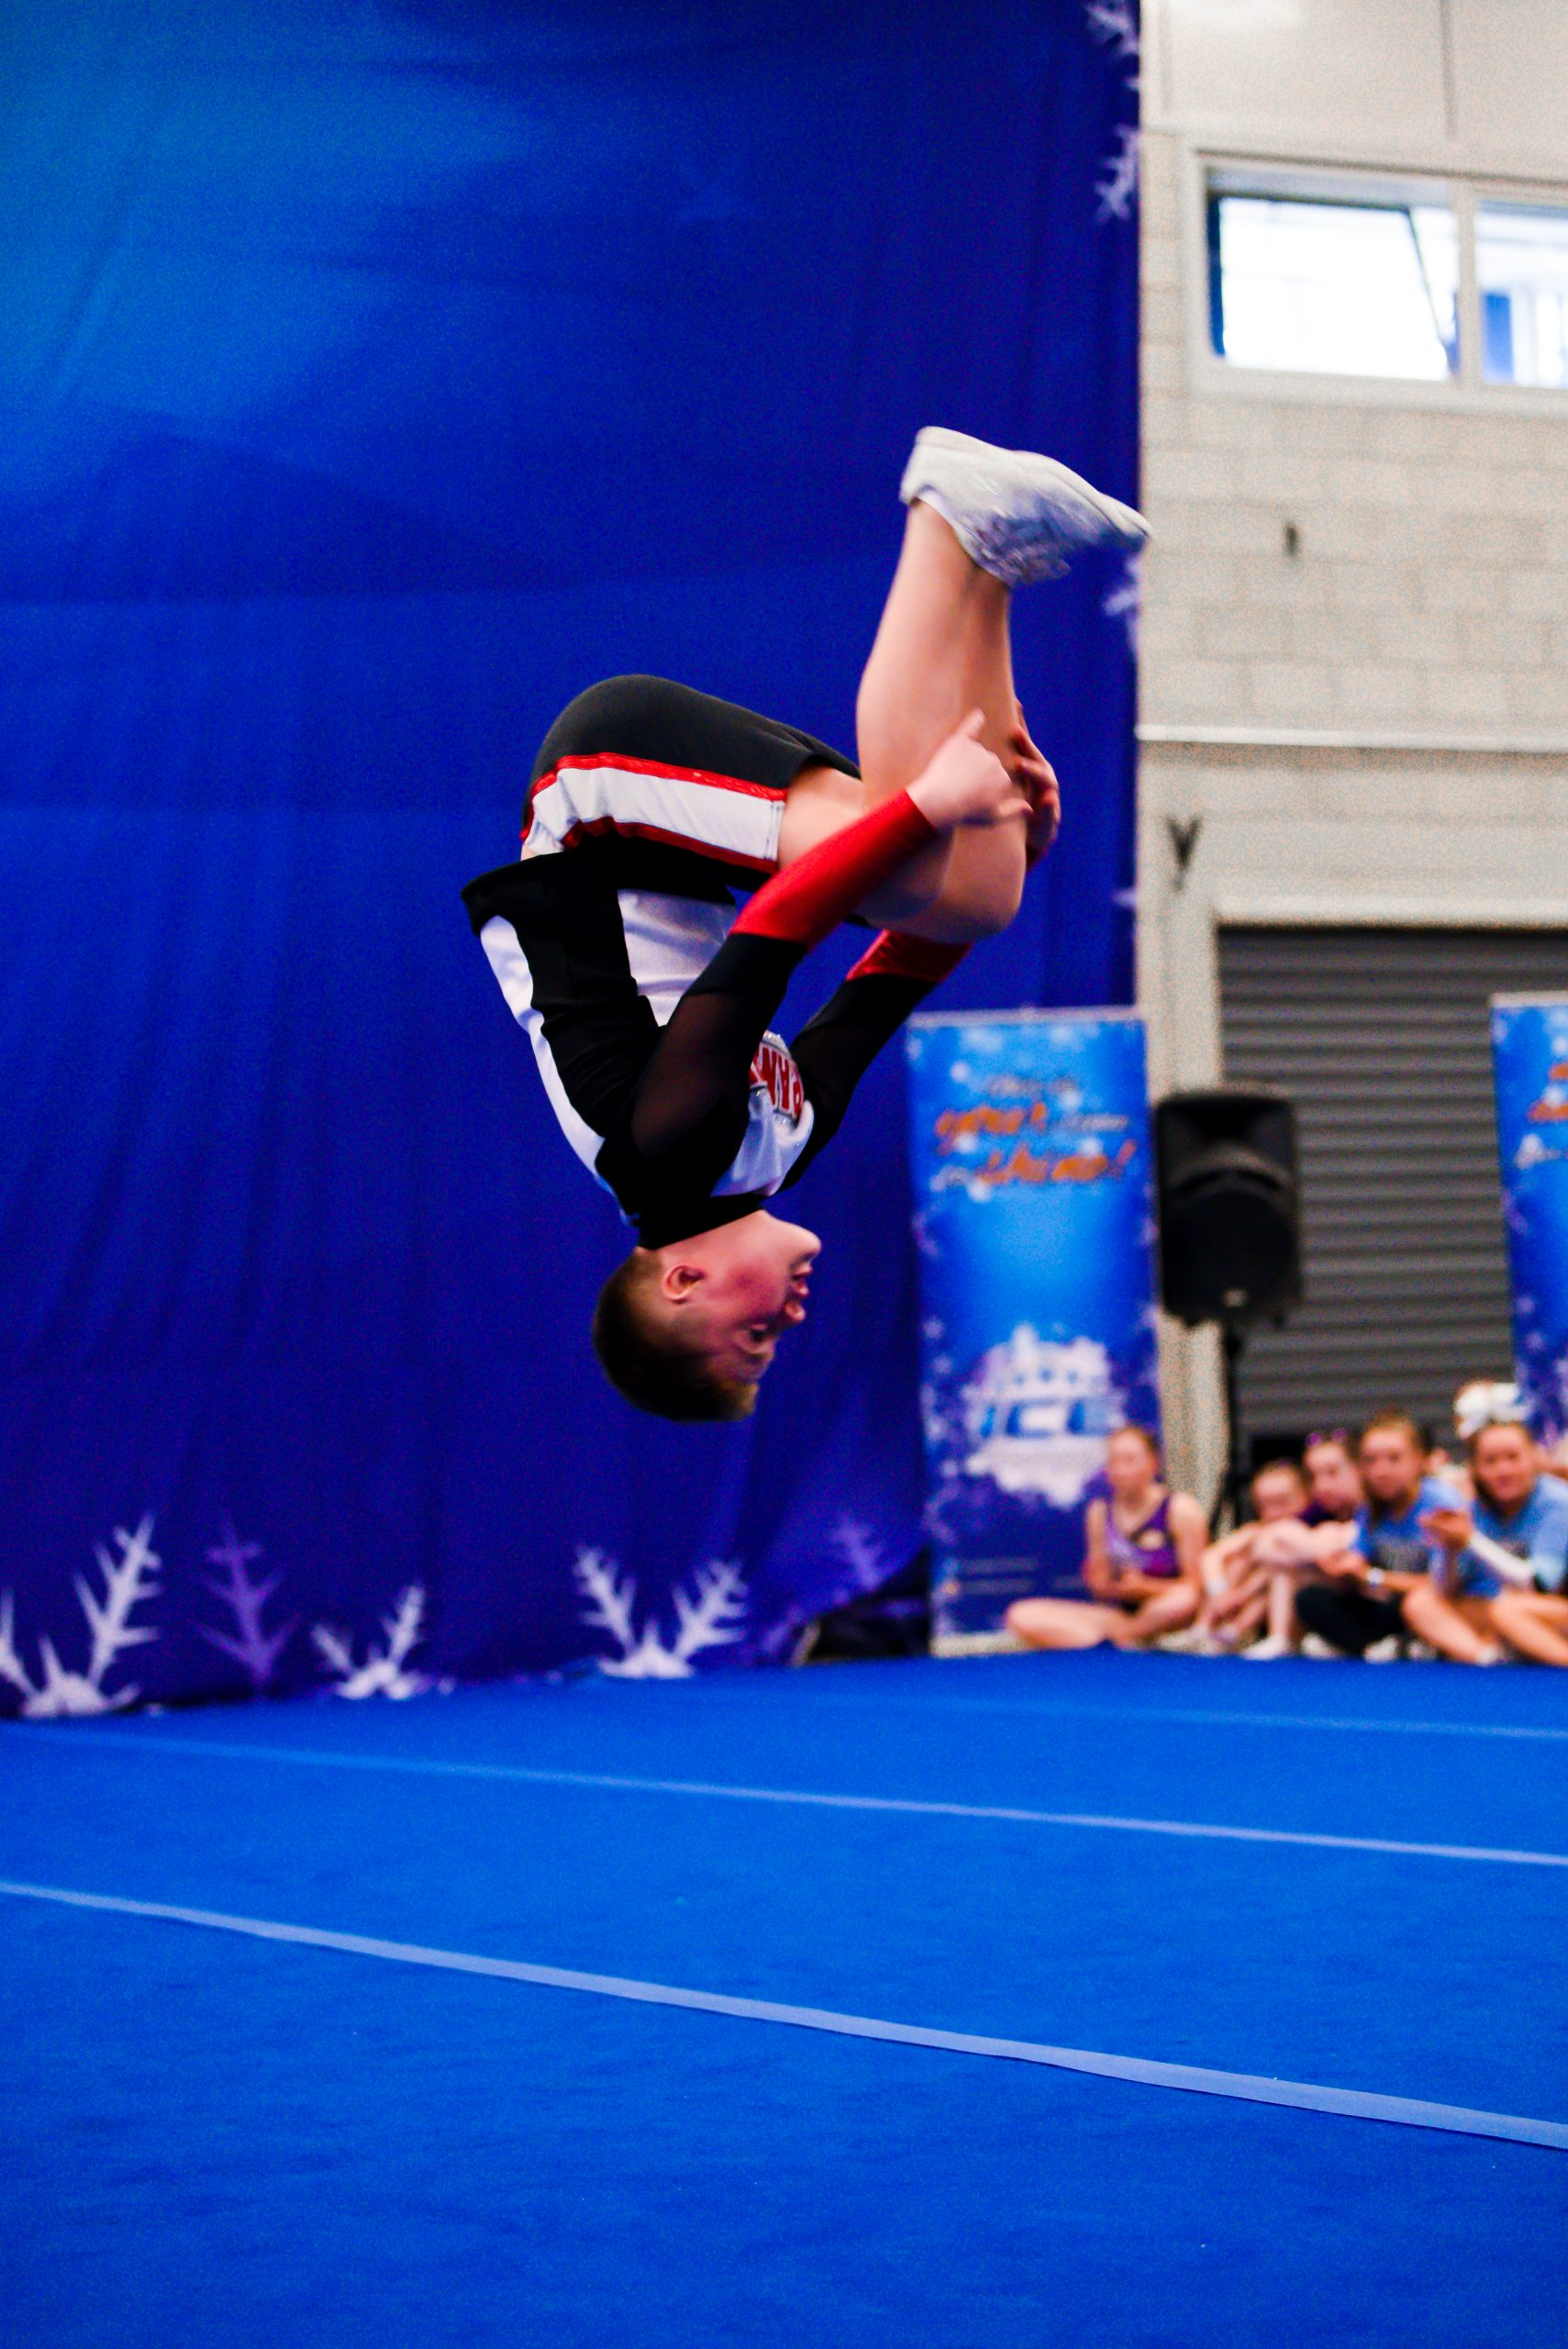 A cheer soloist competes at Incredibly Cool Events